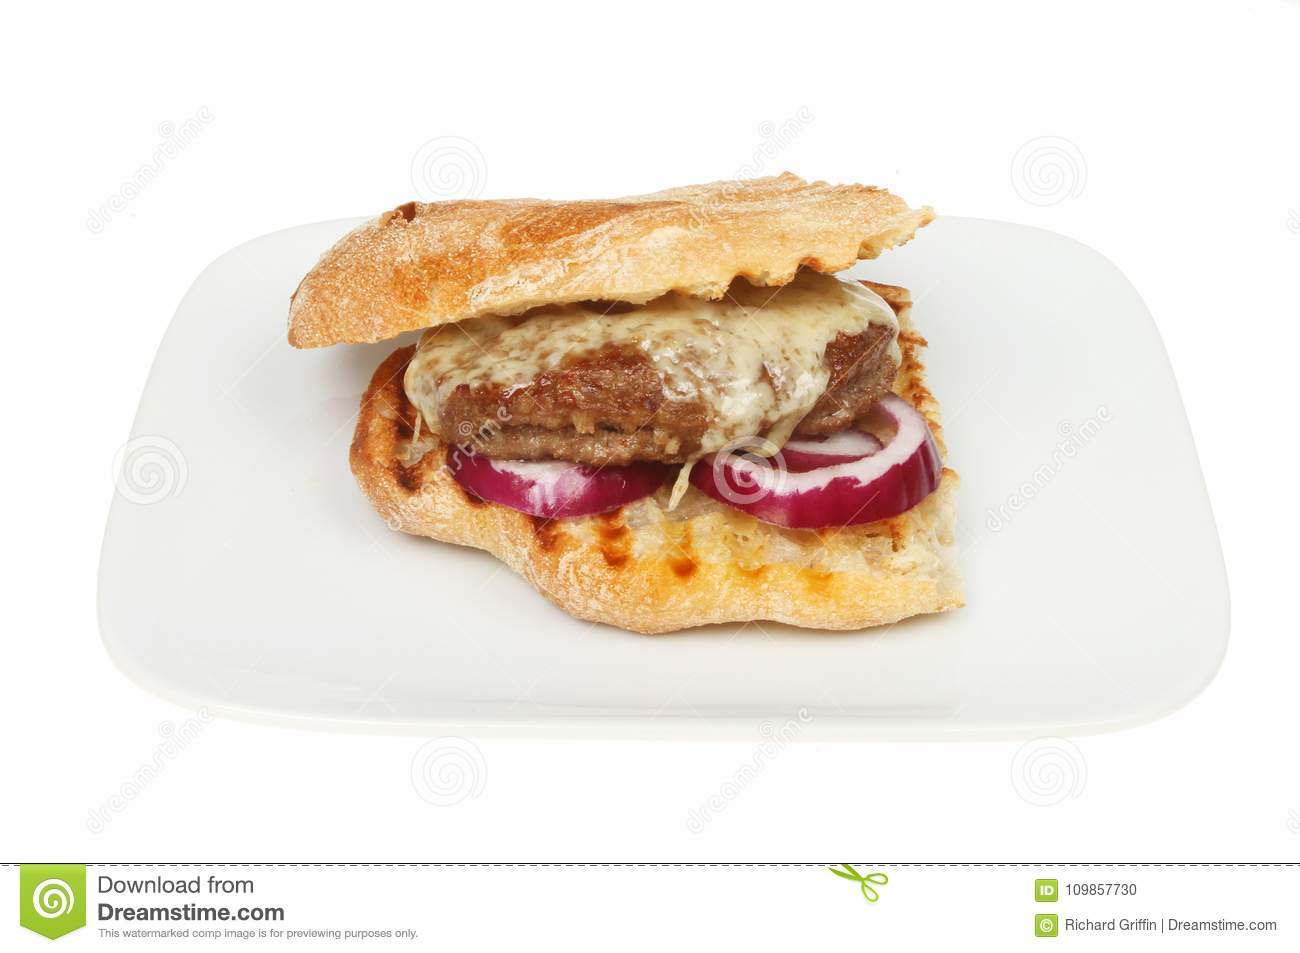 Cheeseburger in ciabatta